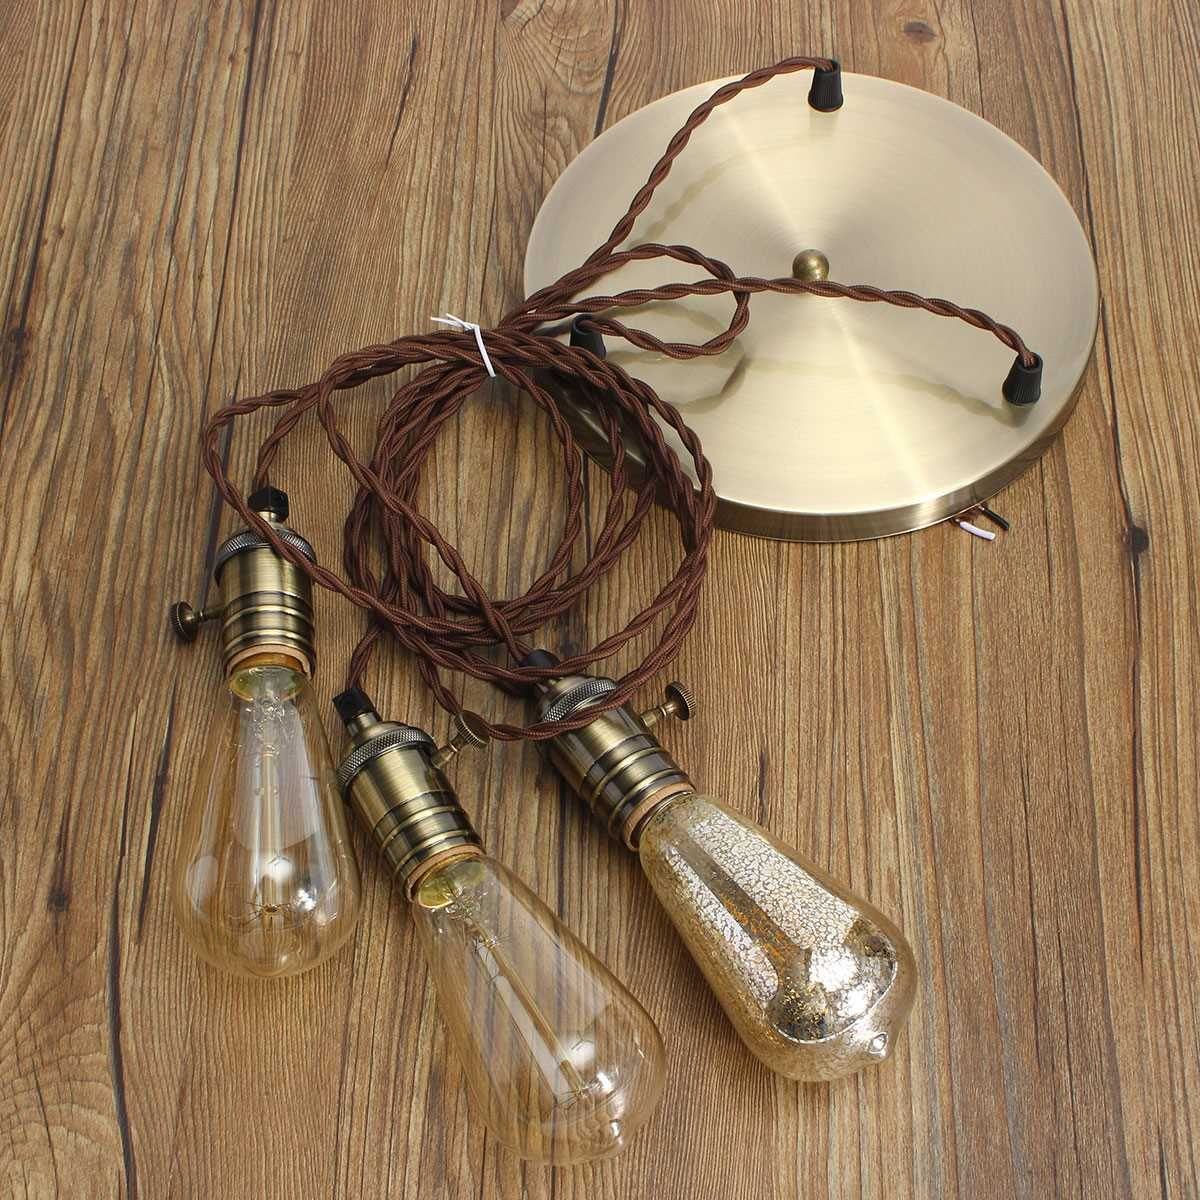 Lamp Base E27 Retro Vintage Industrial Loft Pendant Ceiling Edison Light Lamp Base Holder Hanging Lampshade Socket With Switch